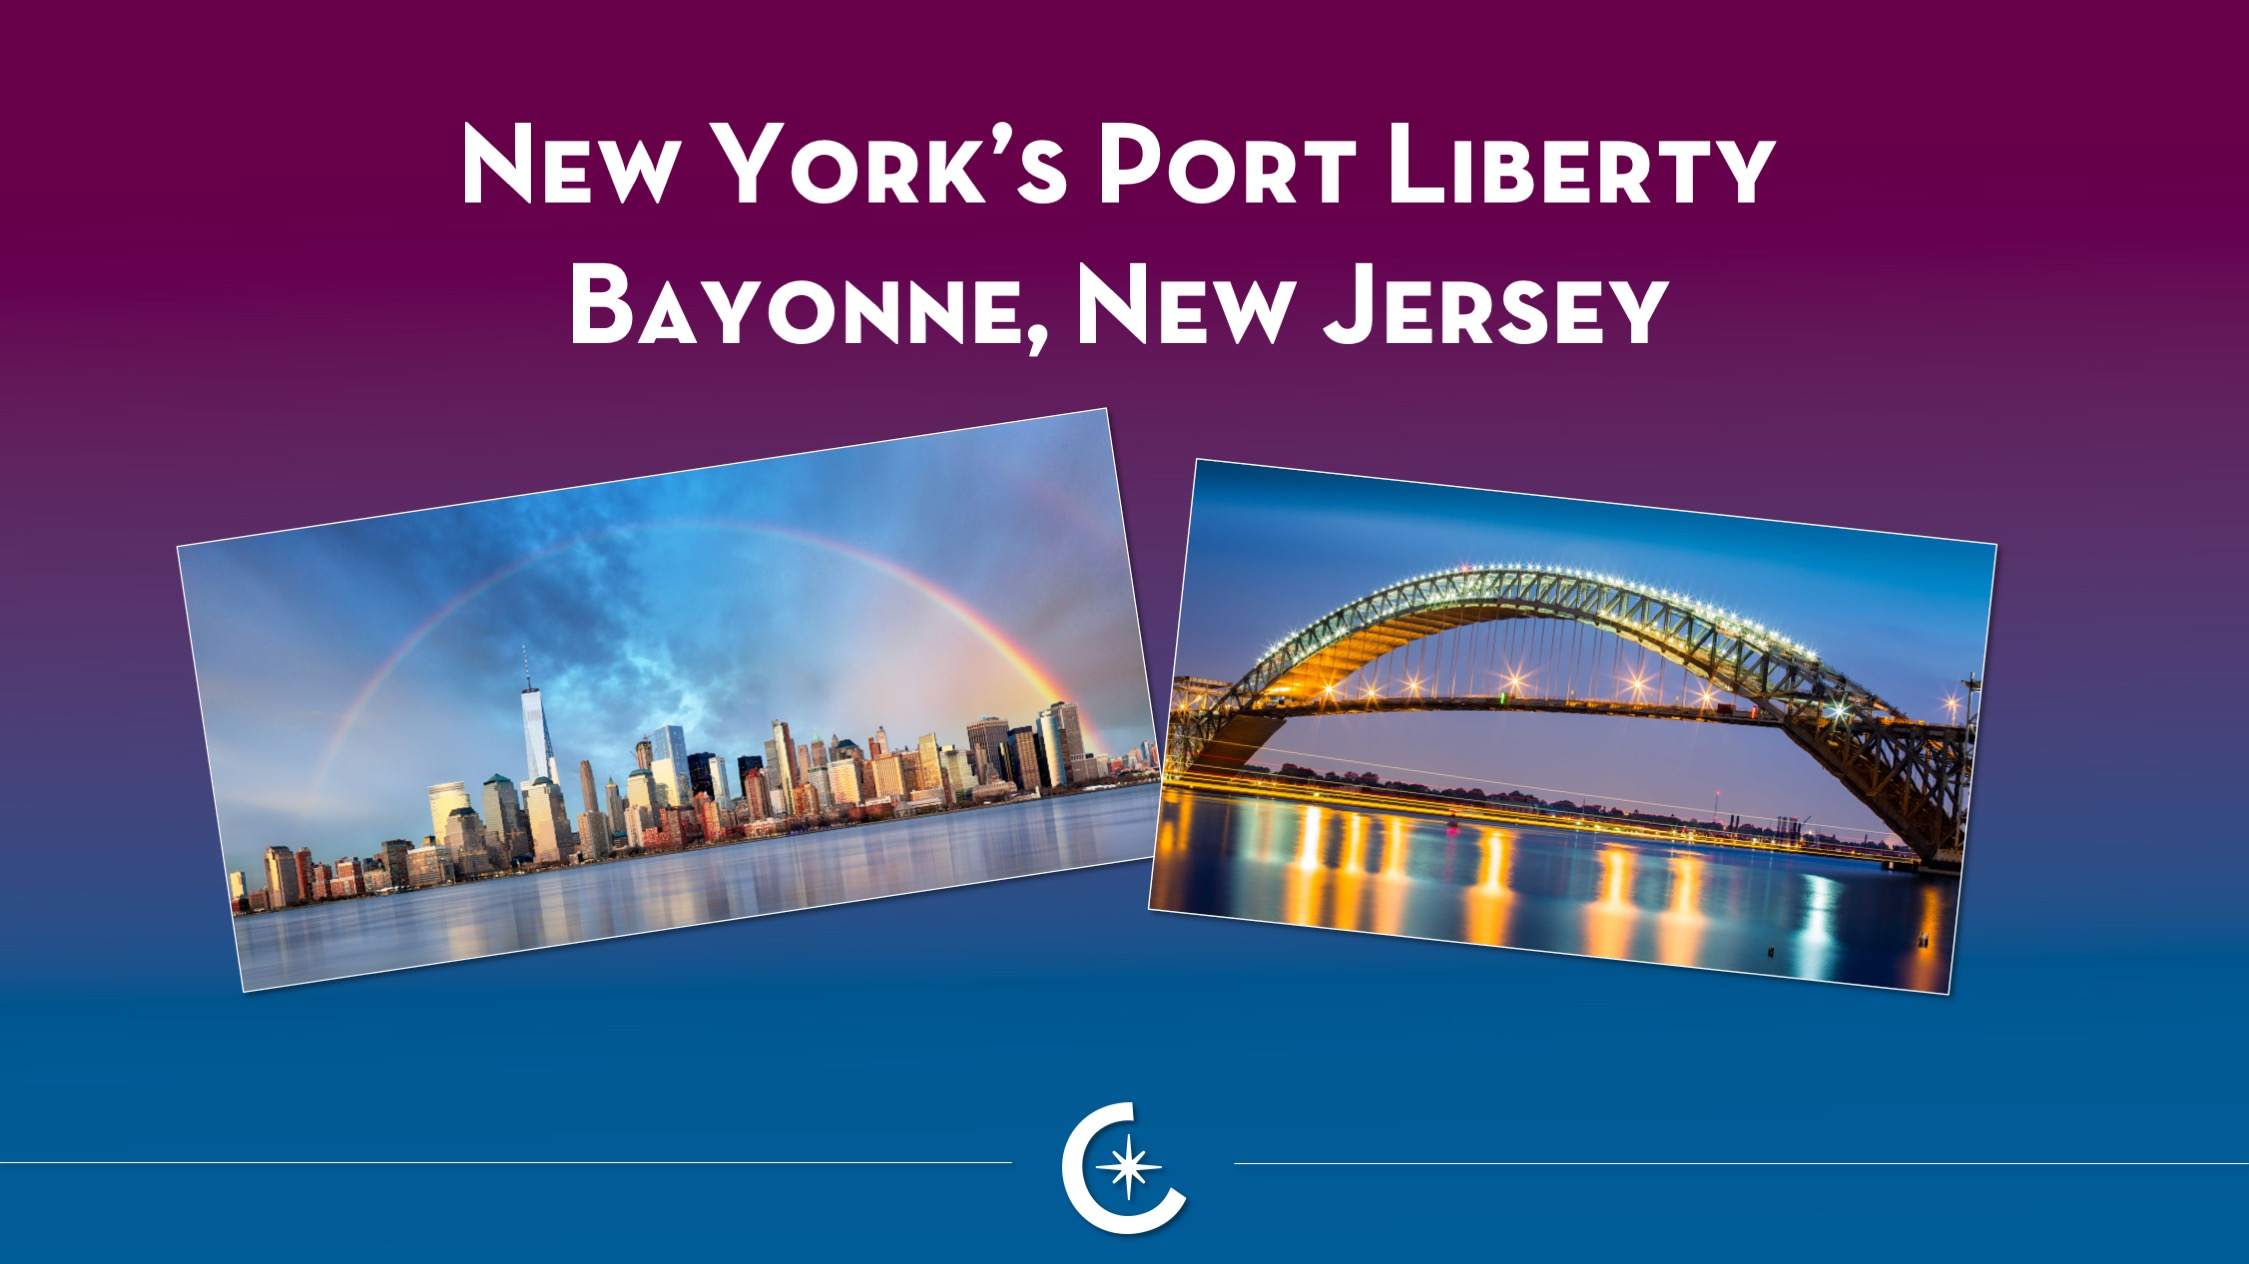 Inaugural Cruise NY to Ptown CarnivalAboard Celebrity Summit: Trip